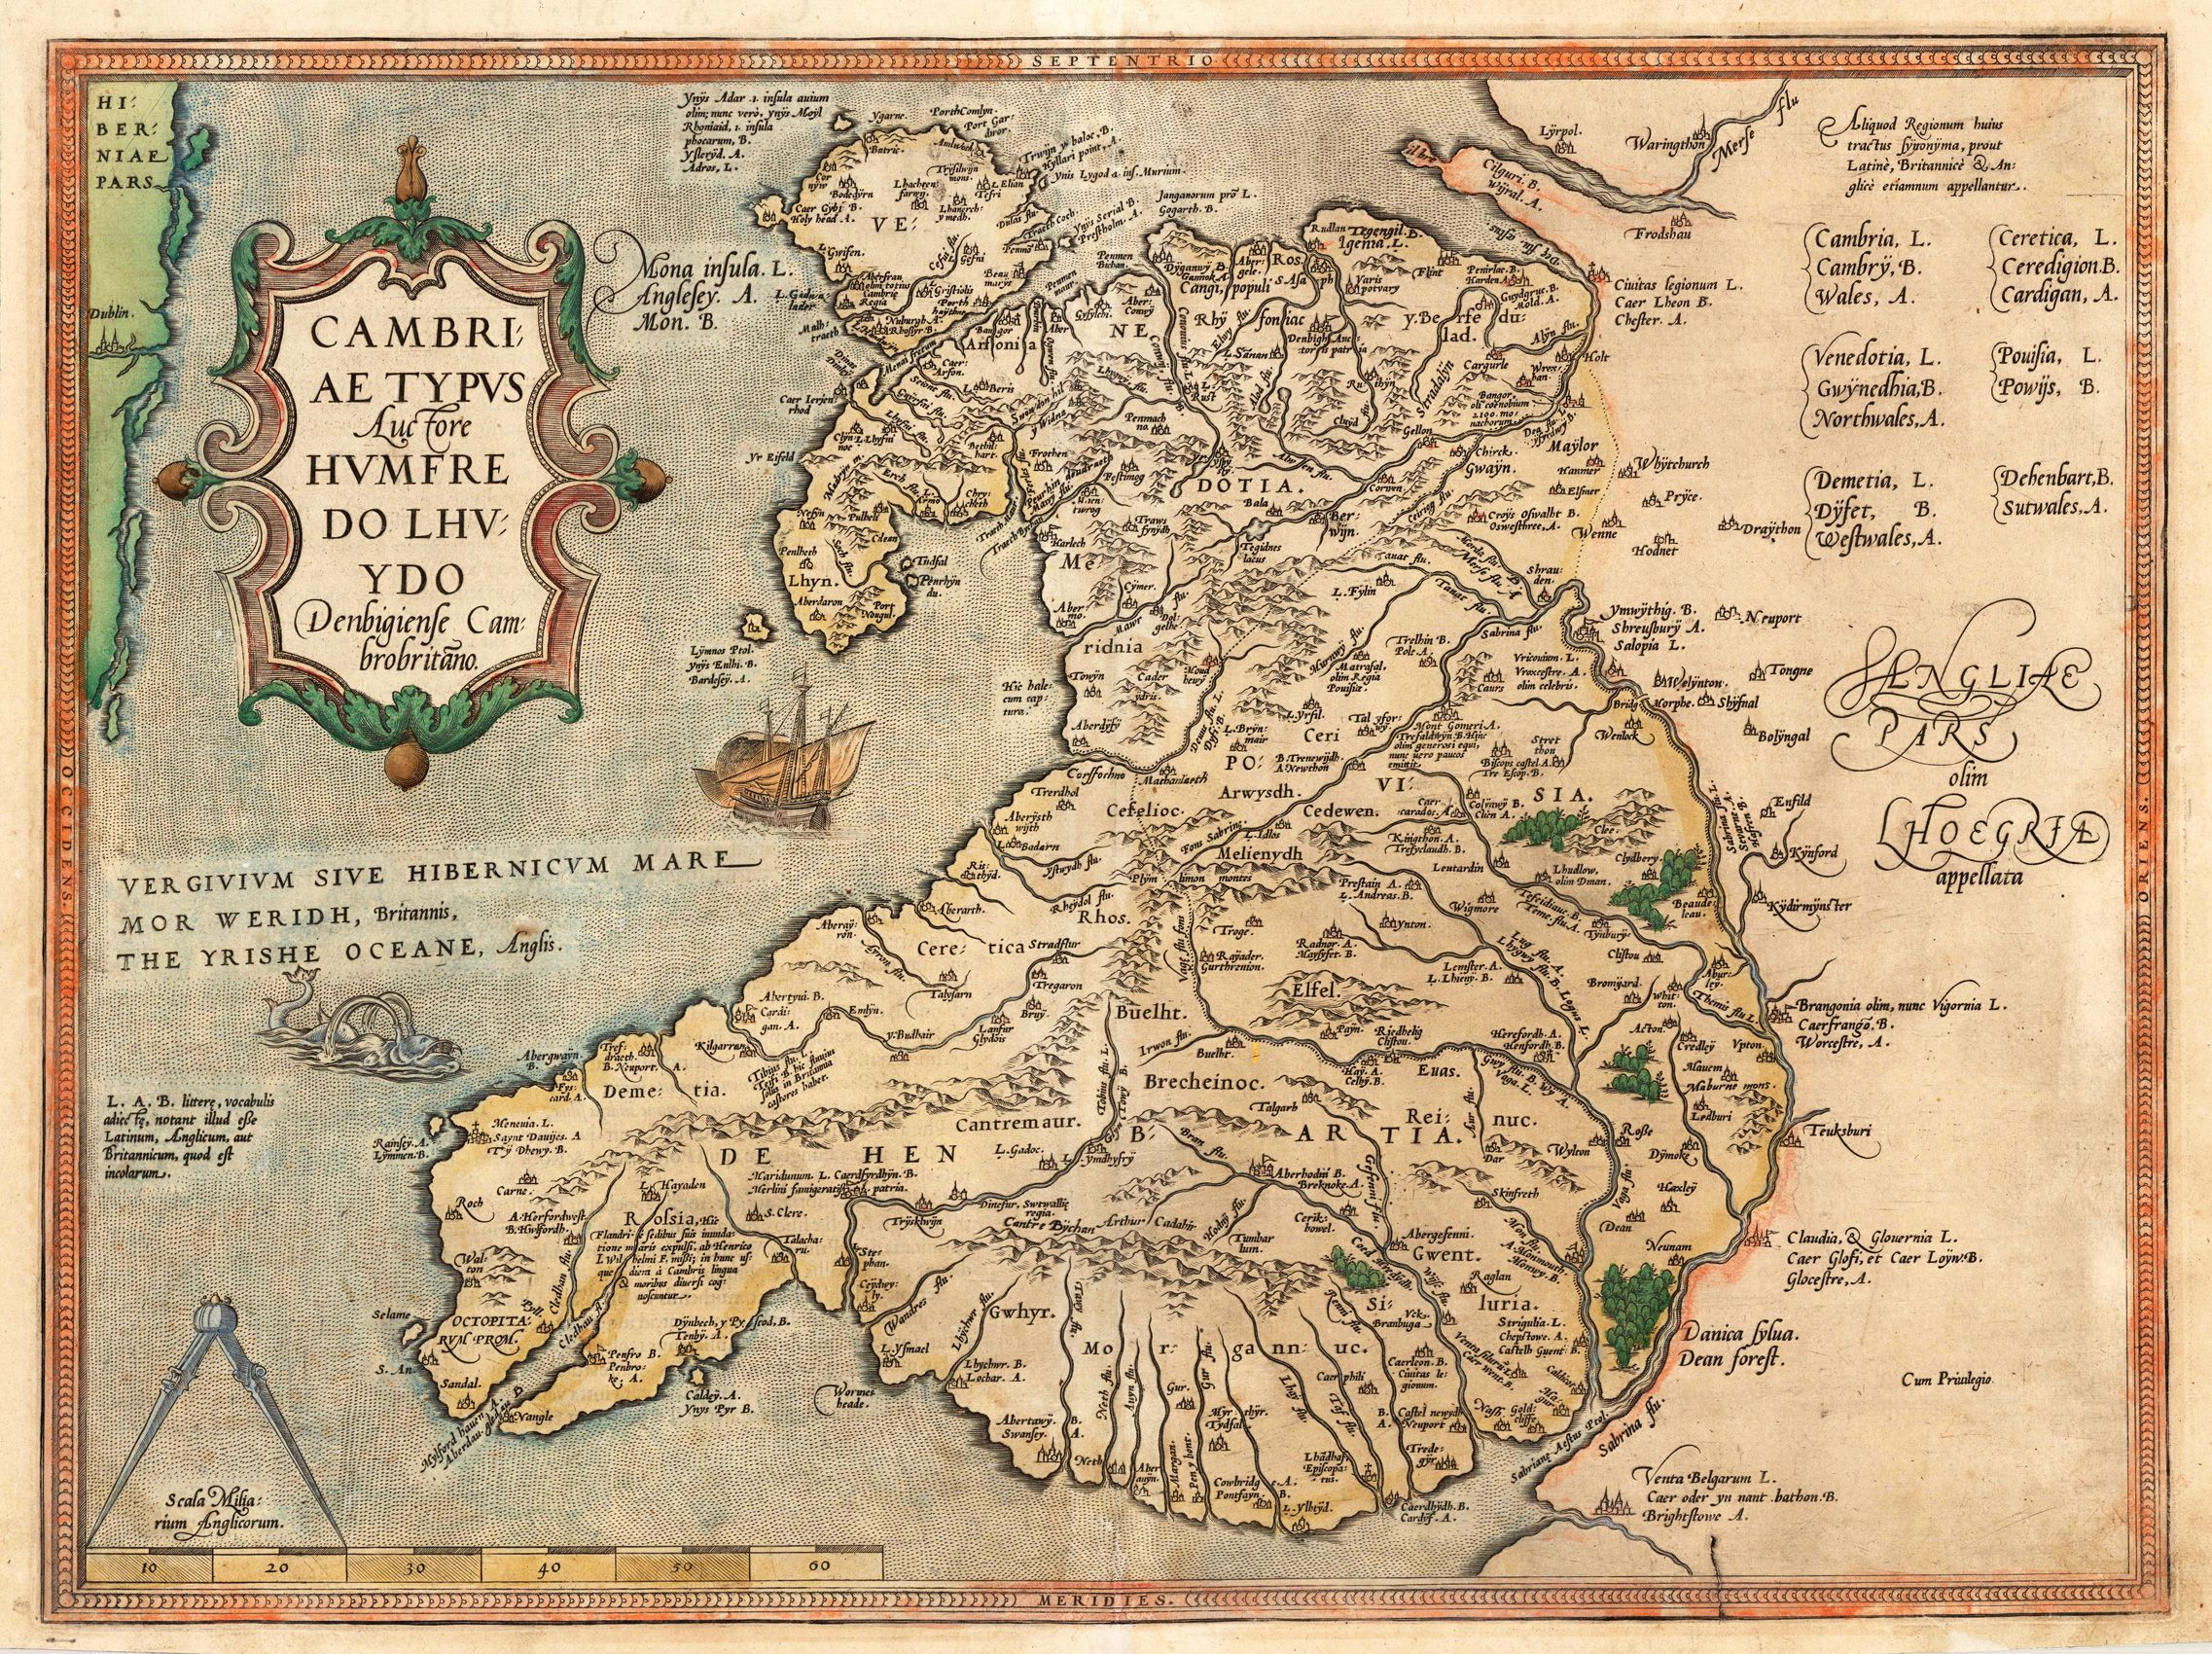 1700s in Wales